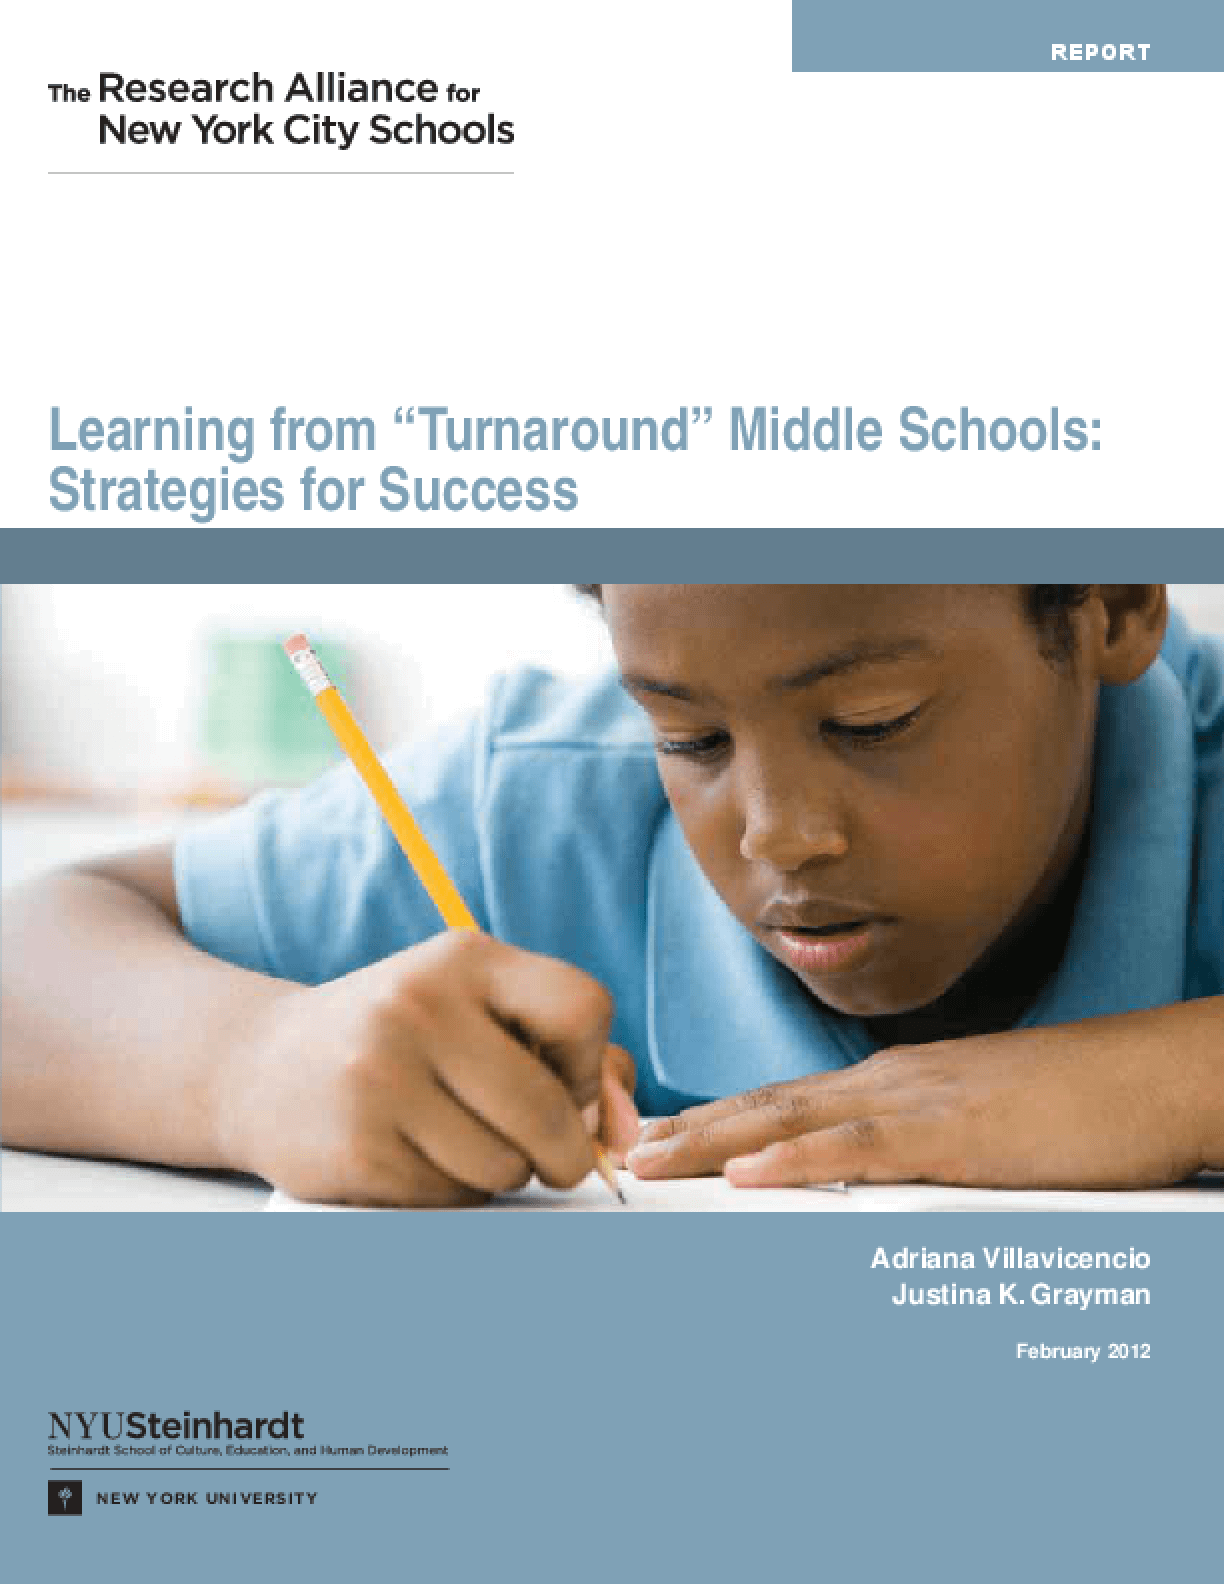 Learning from Turnaround Middle Schools: Strategies for Success